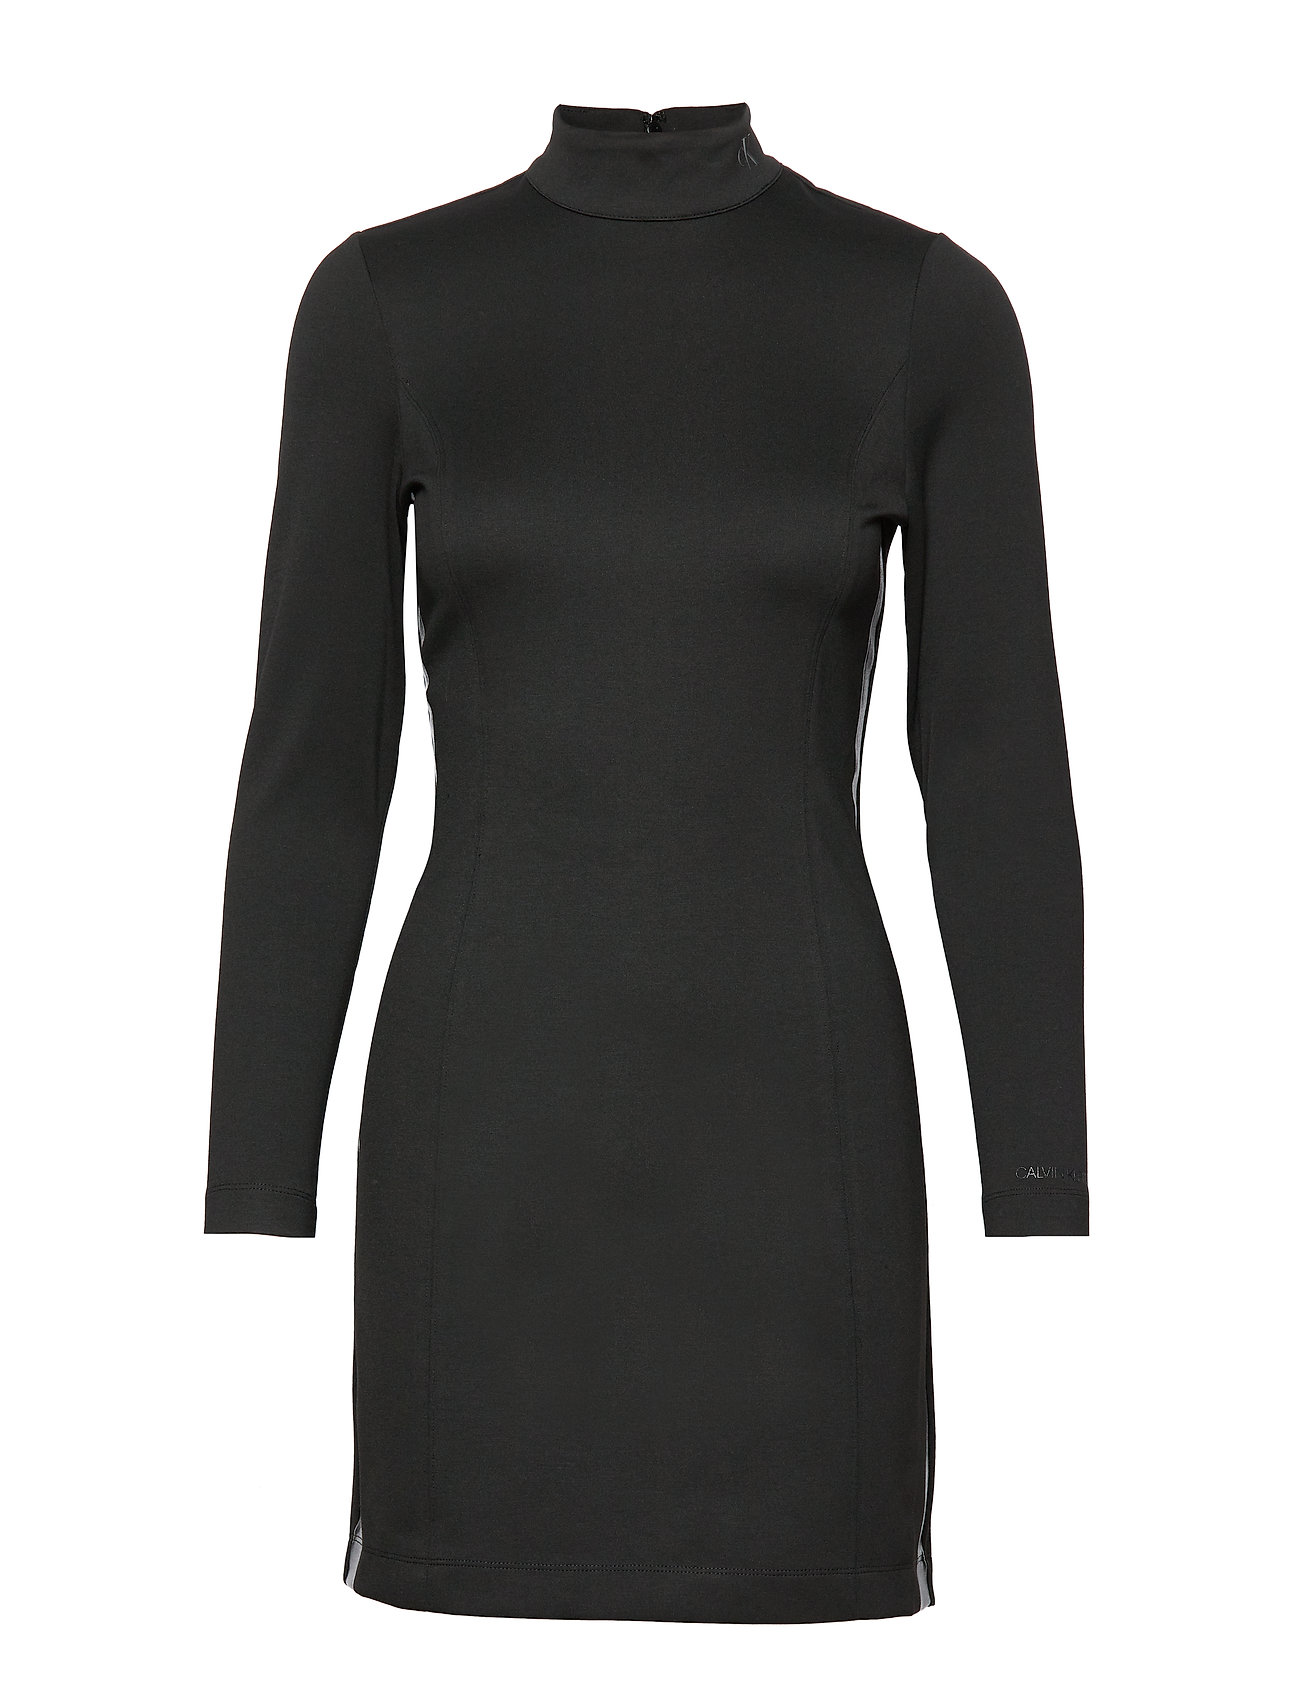 Calvin Klein Jeans COATED MILANO DRESS - CK BLACK